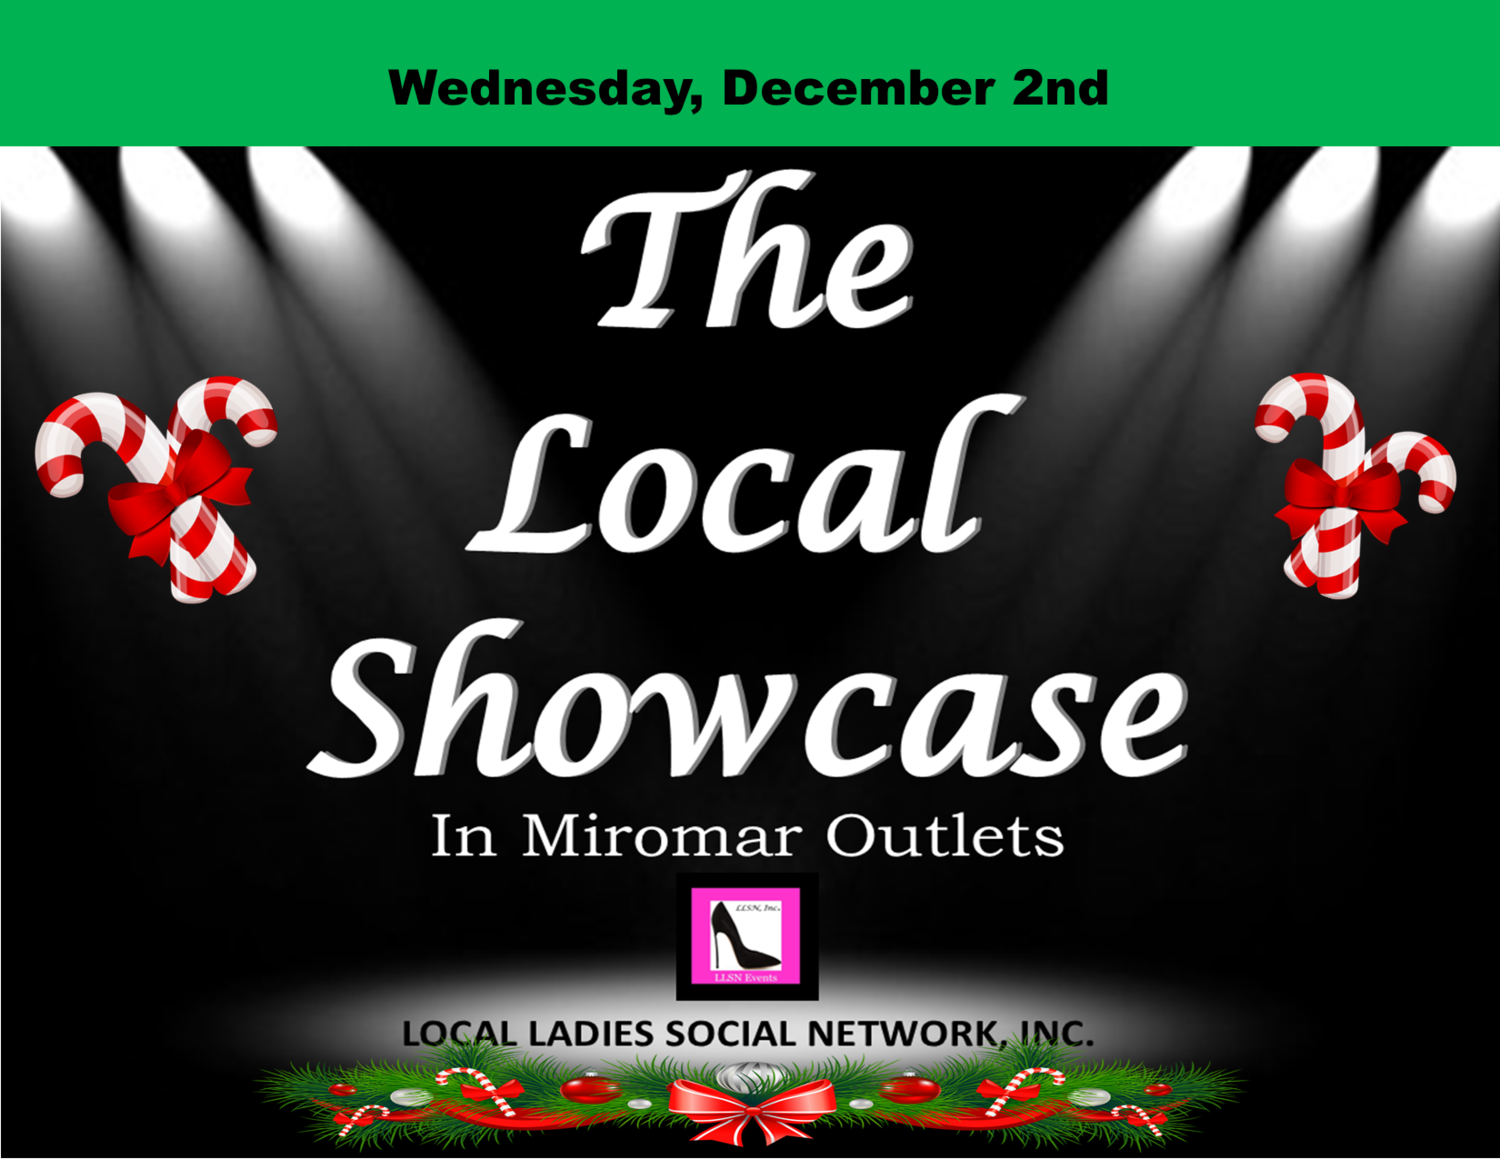 Wednesday, December 2nd 11am-7pm